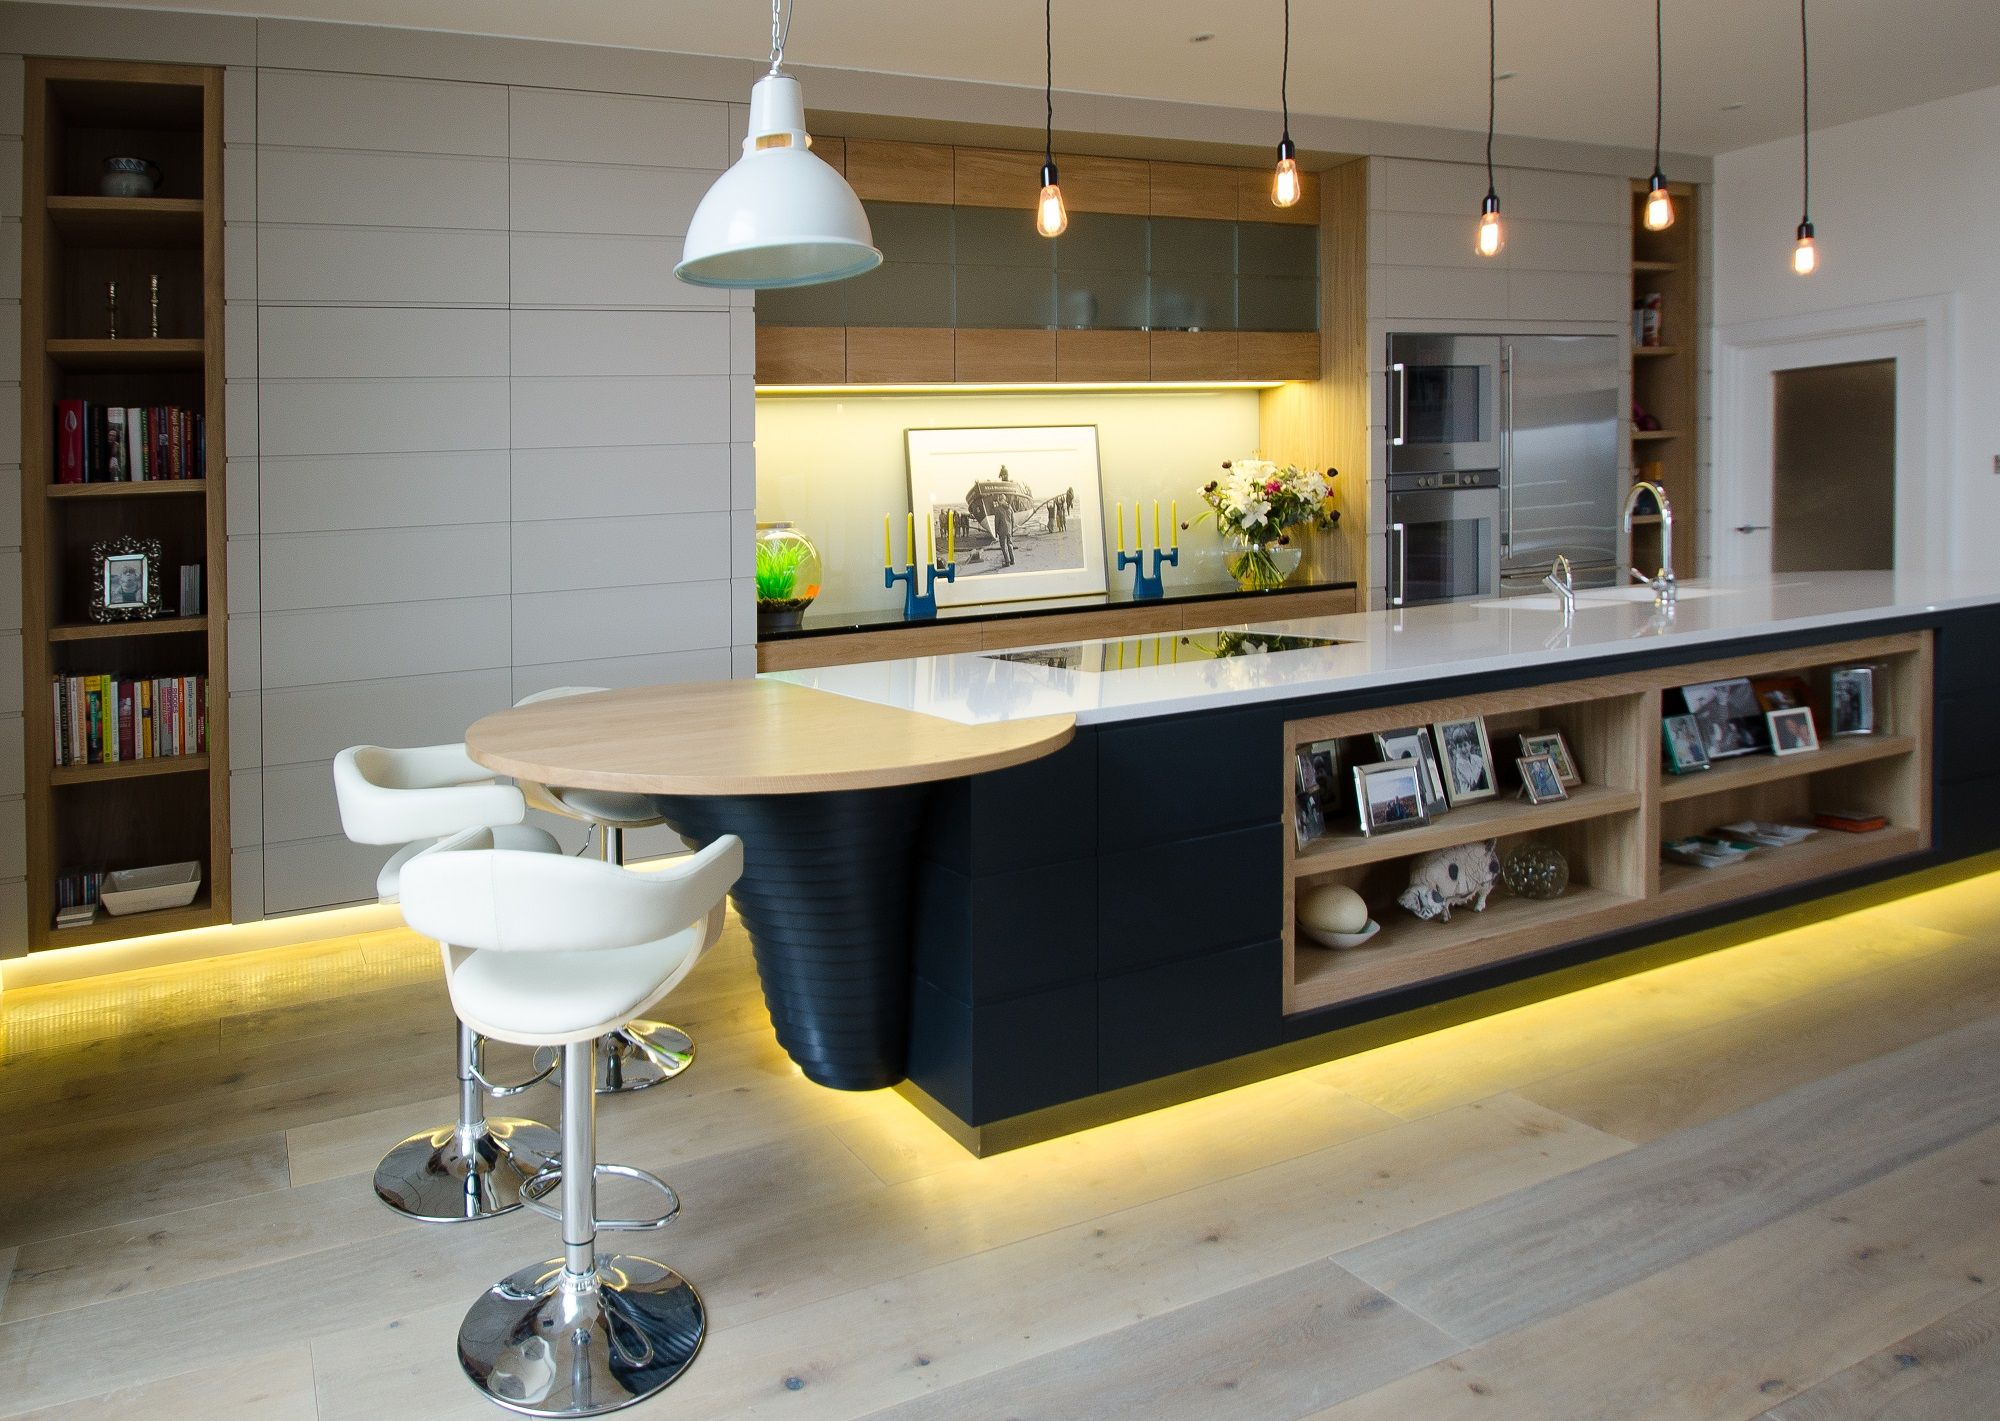 Best Kitchen Island Ideas For Ideas Glow And The Ojays - Best kitchen island ideas